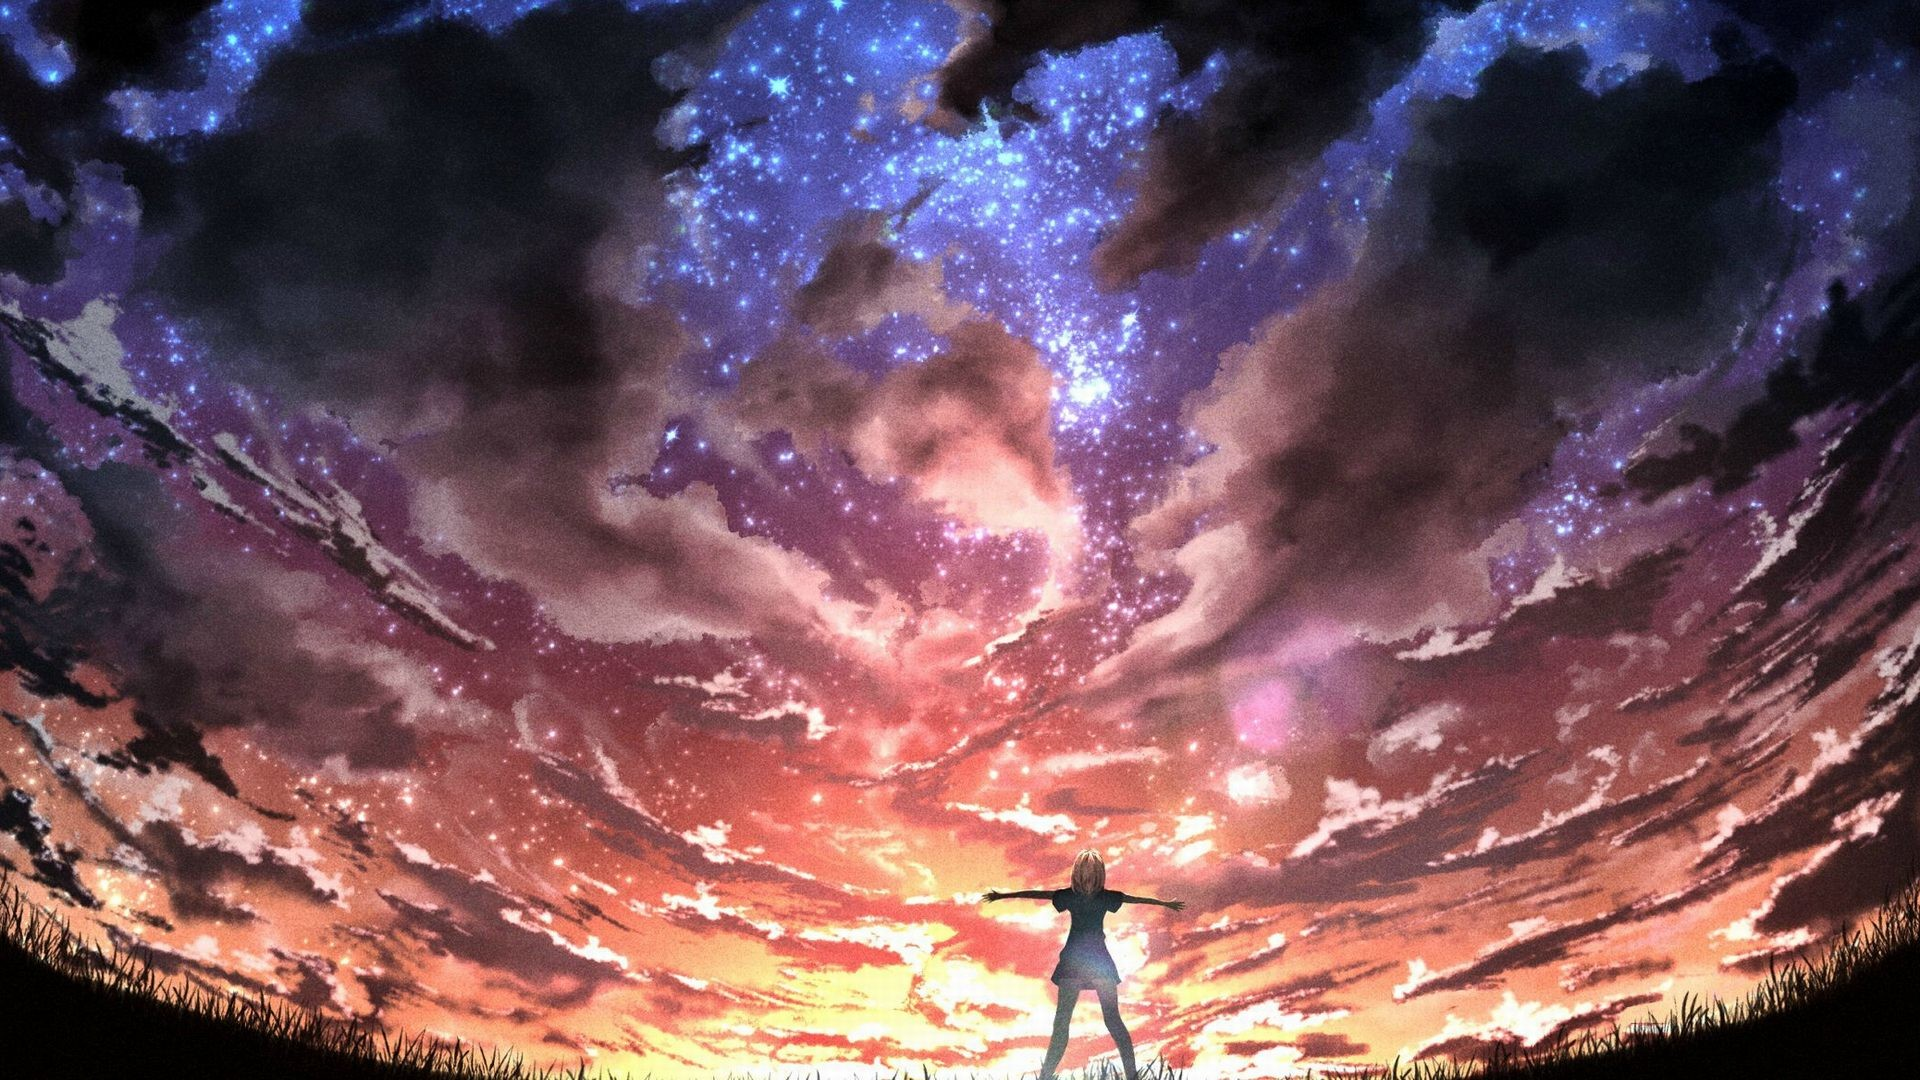 Anime Girl Epic Wallpapers All Anime Wallpapers 69 Images